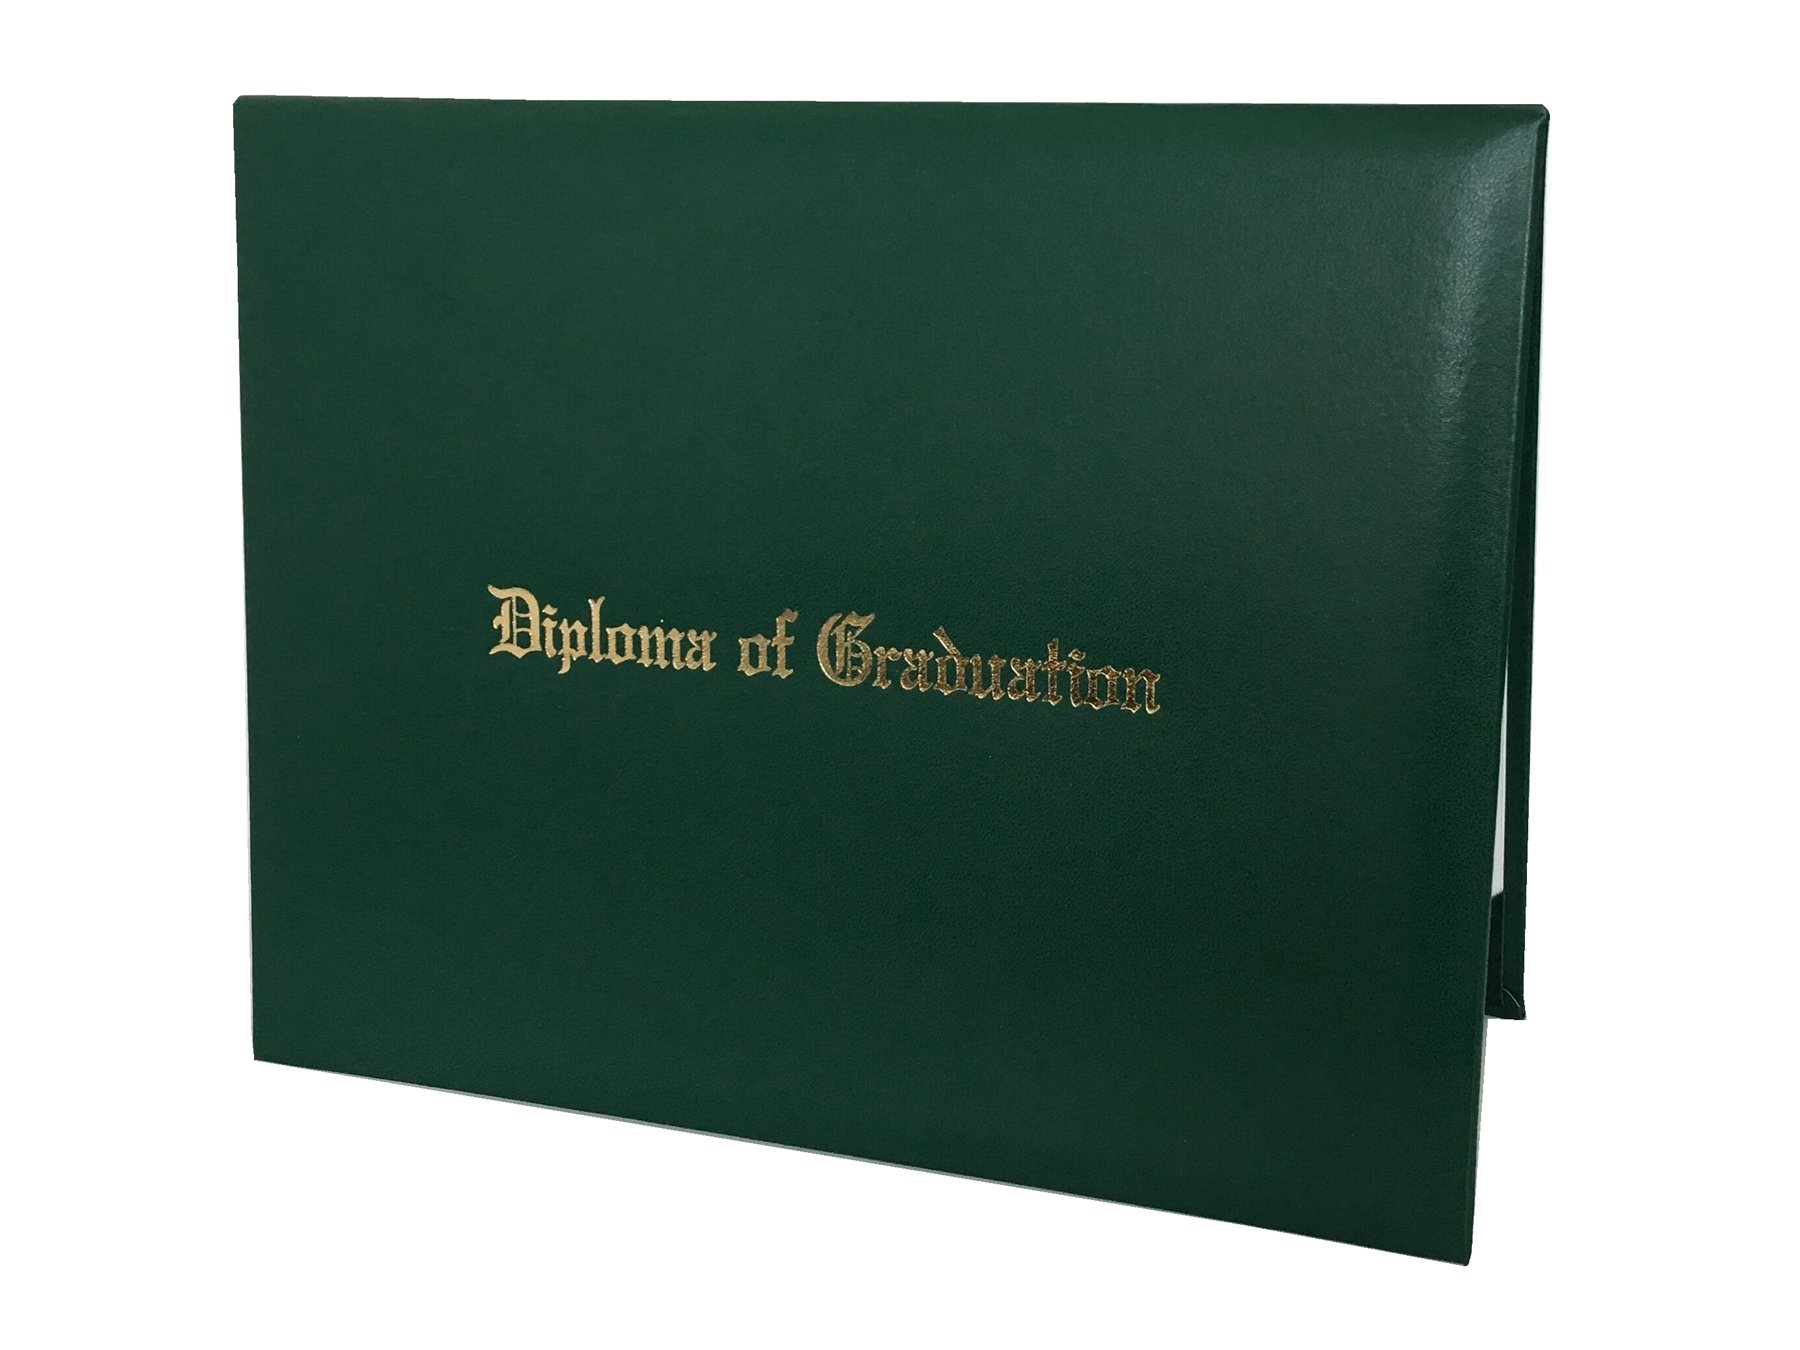 """Annhiengrad Graduation Certificate Cover 8.5"""" X 11"""" with Diploma of Graduation, Forest Green"""